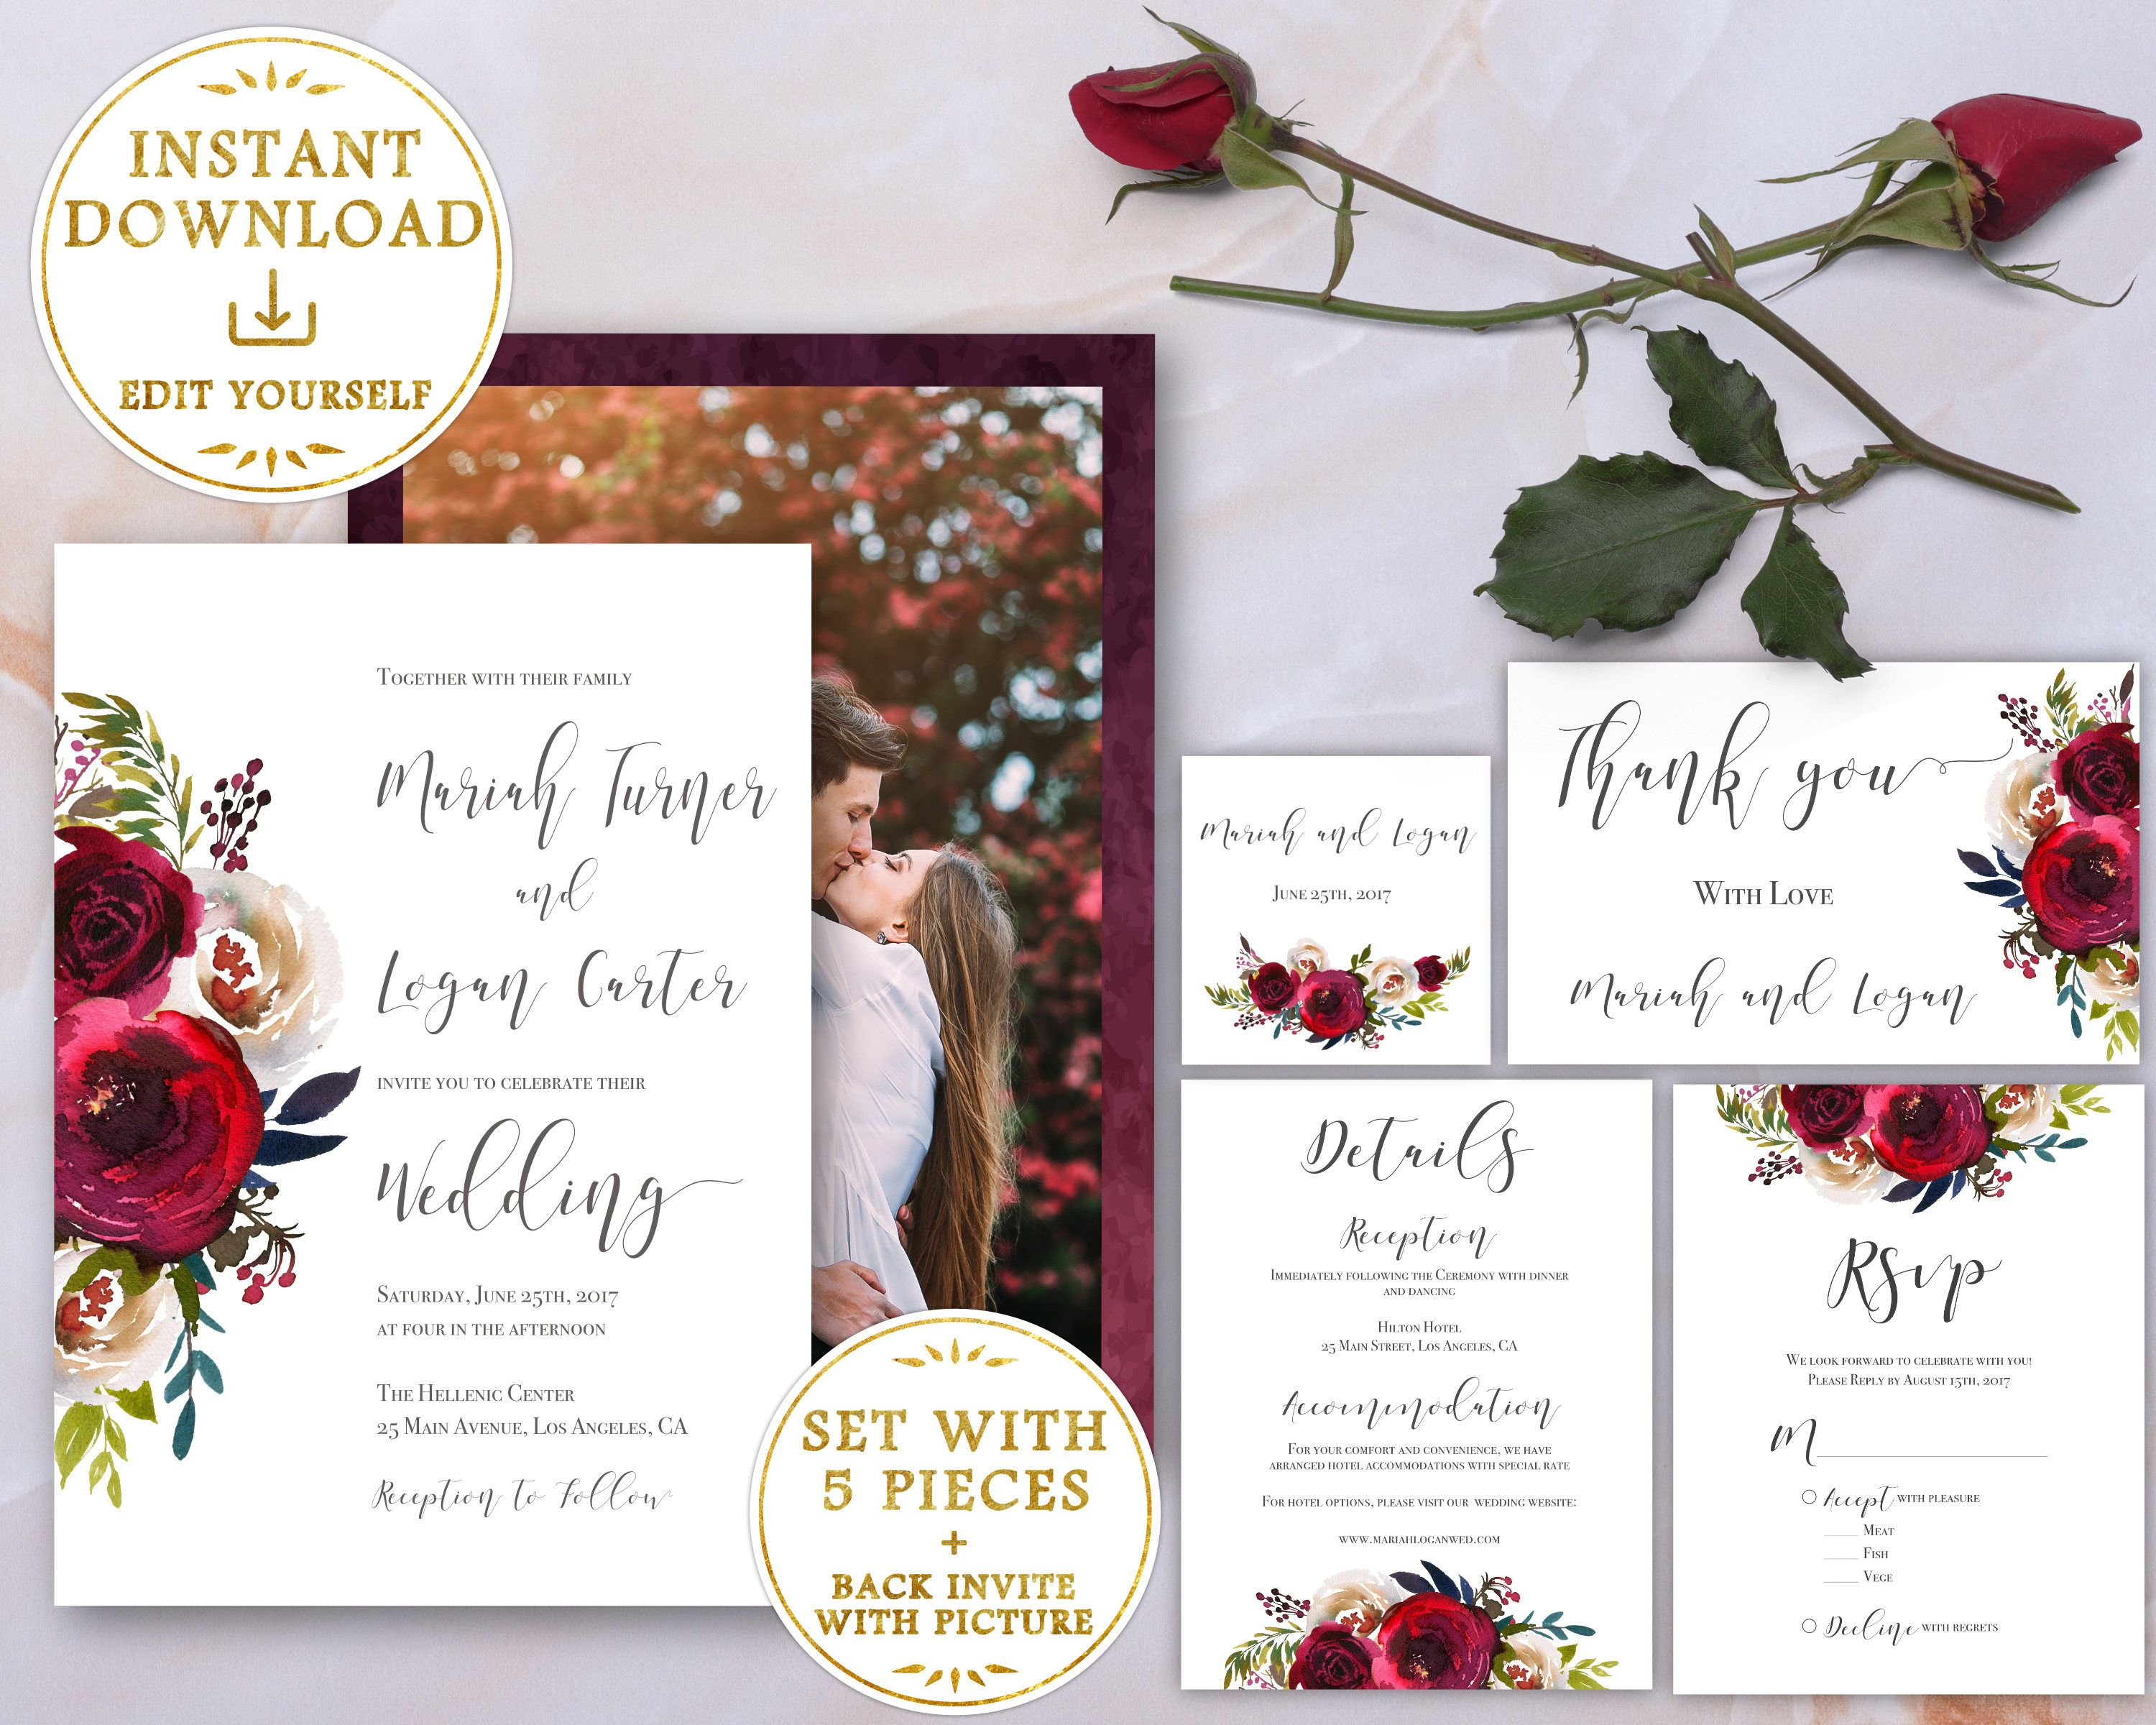 Wedding Invitation Wedding Invitation Template Set Printable Bundle Burgundy Floral With Photo Lds Wedding Wedding Invitation Templates Wedding Invitations Pearl Wedding Invitations